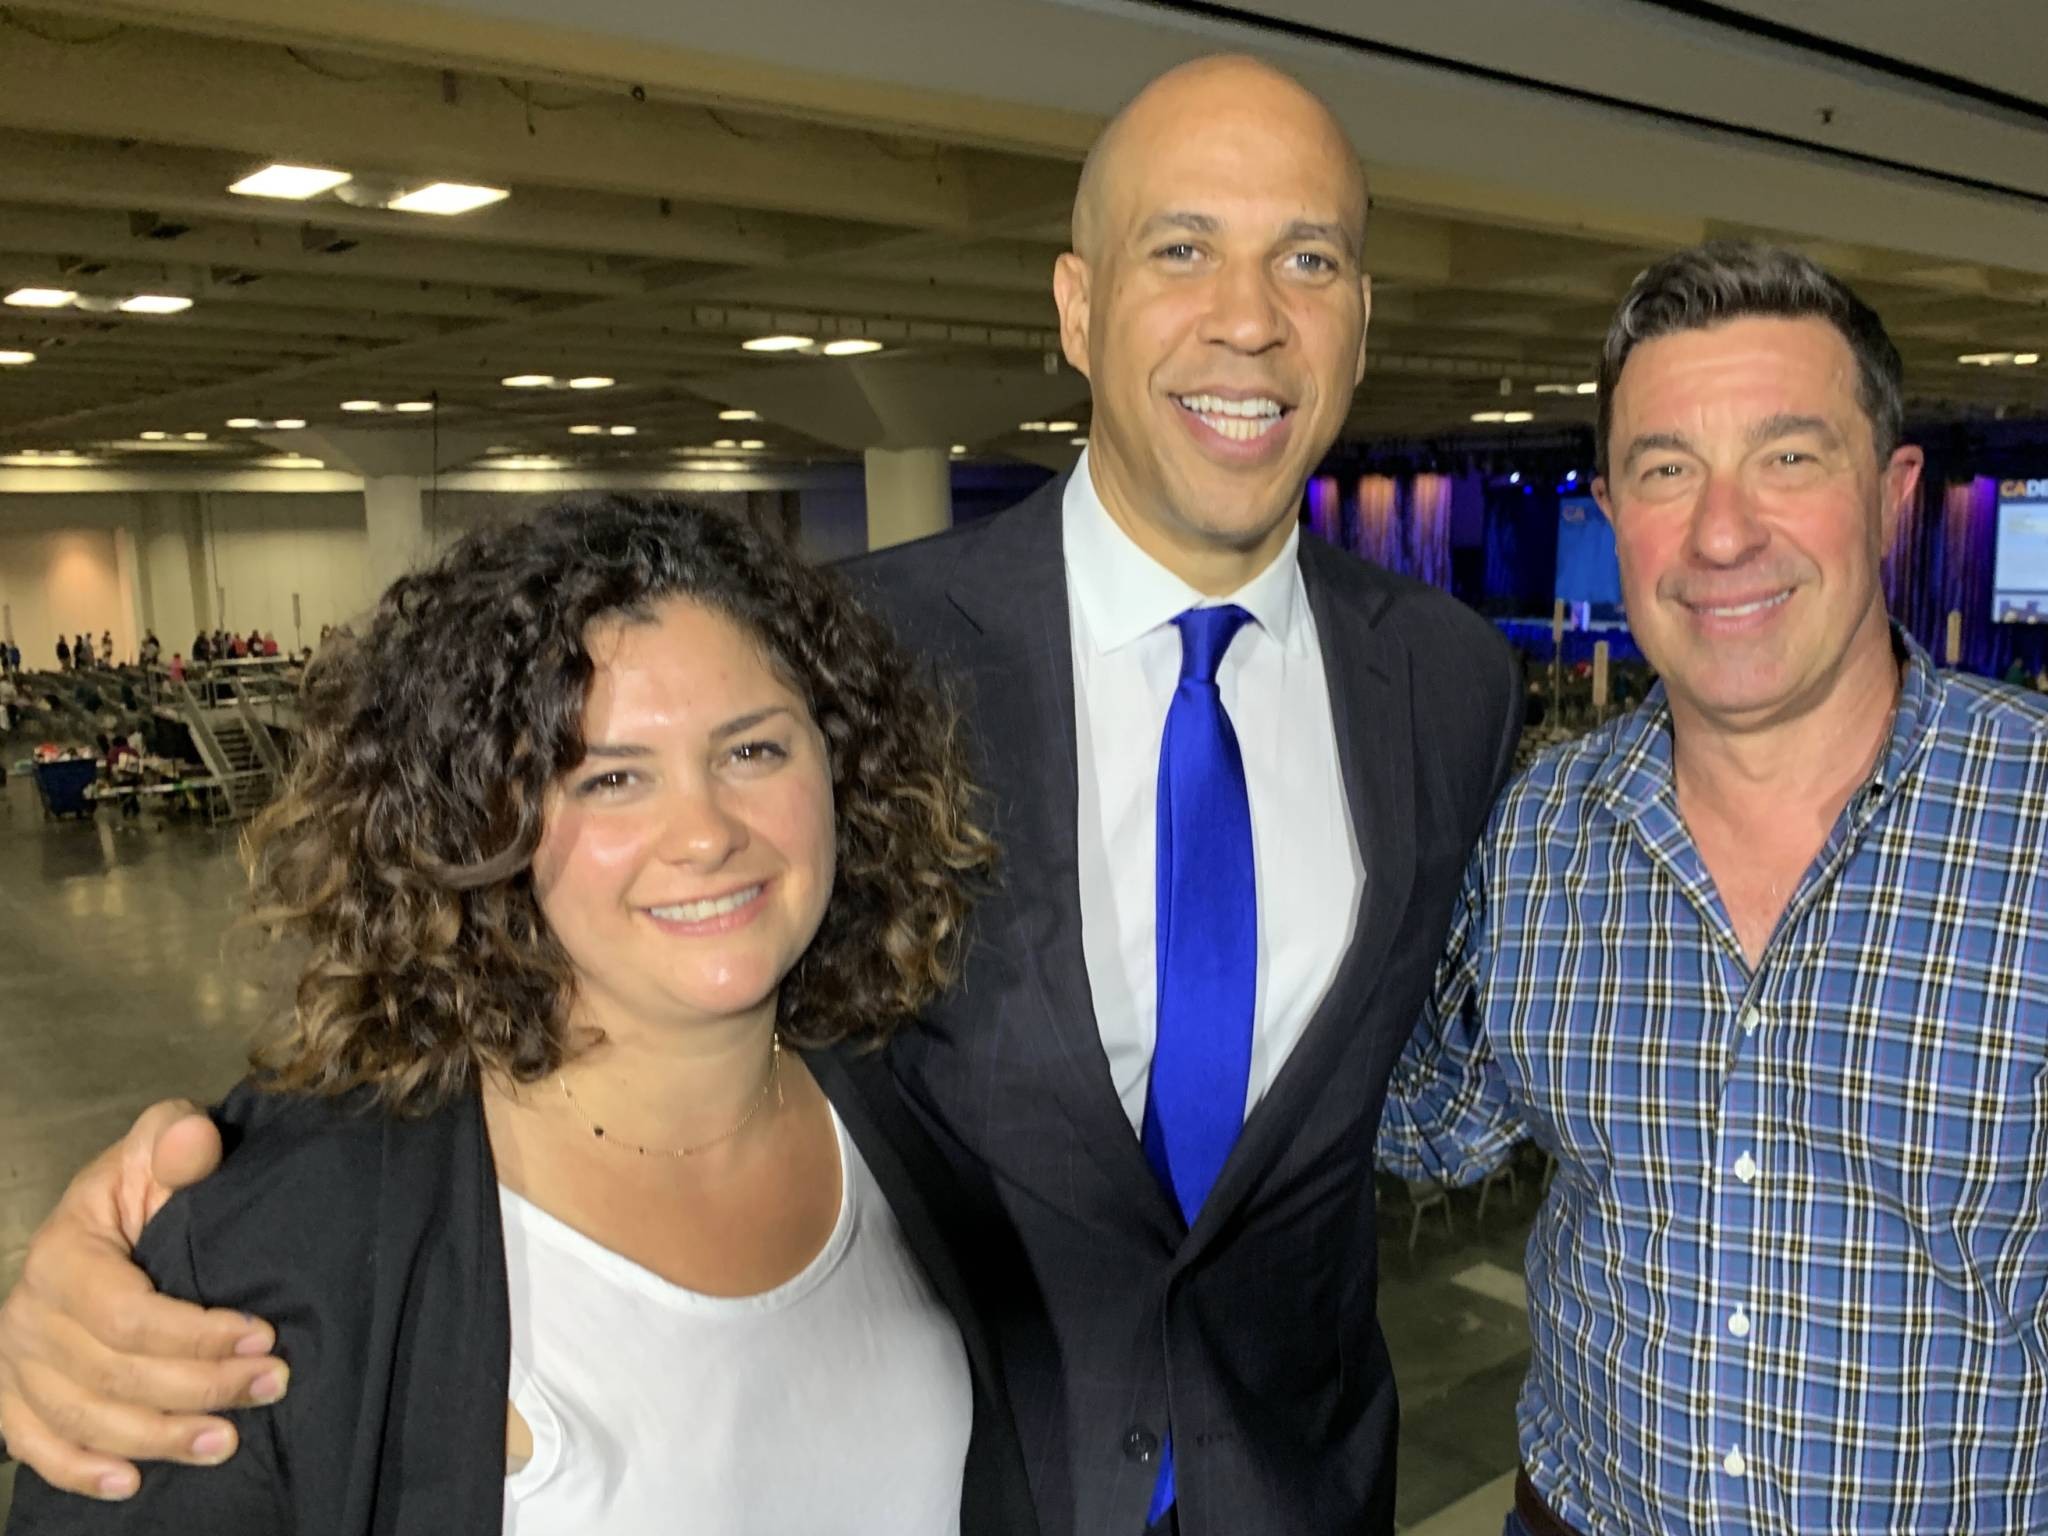 Cory Booker on His Push for 'Civic Grace,' Football at Stanford, and Dating in the Projects